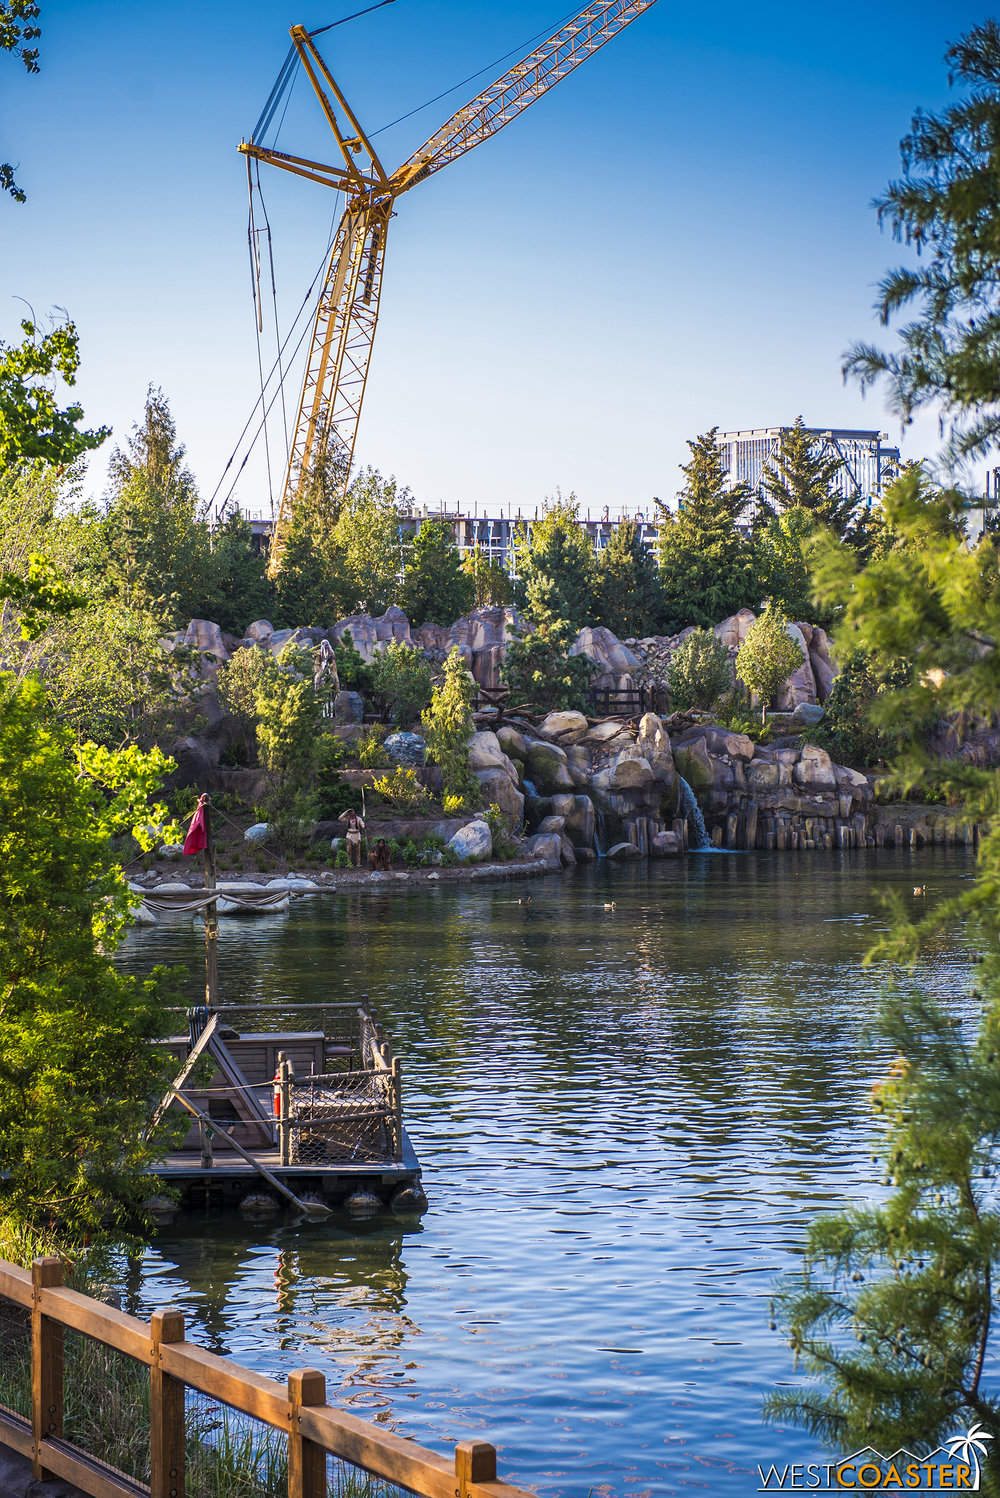 It's great, because with the forced perspective, the   peaks of Star Wars: Galaxy's Edge   will end up looking like another background layer of western geology from the Rivers of America side!